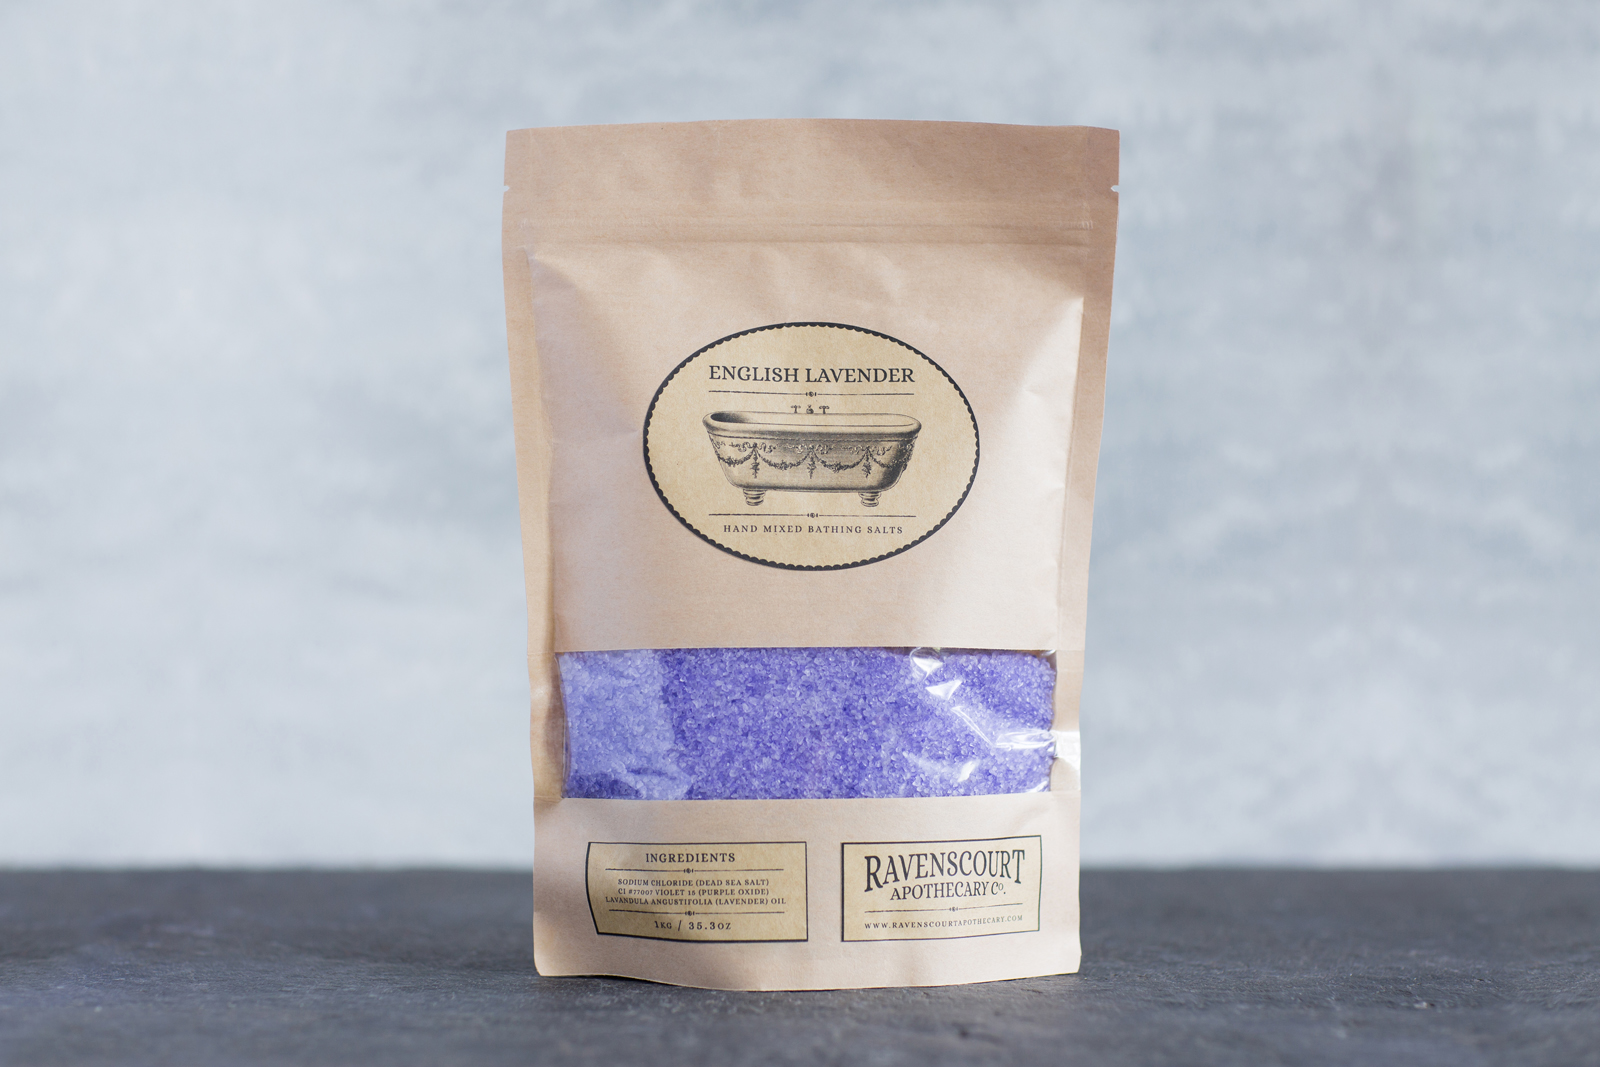 English Lavender Bath Salt 1 kg